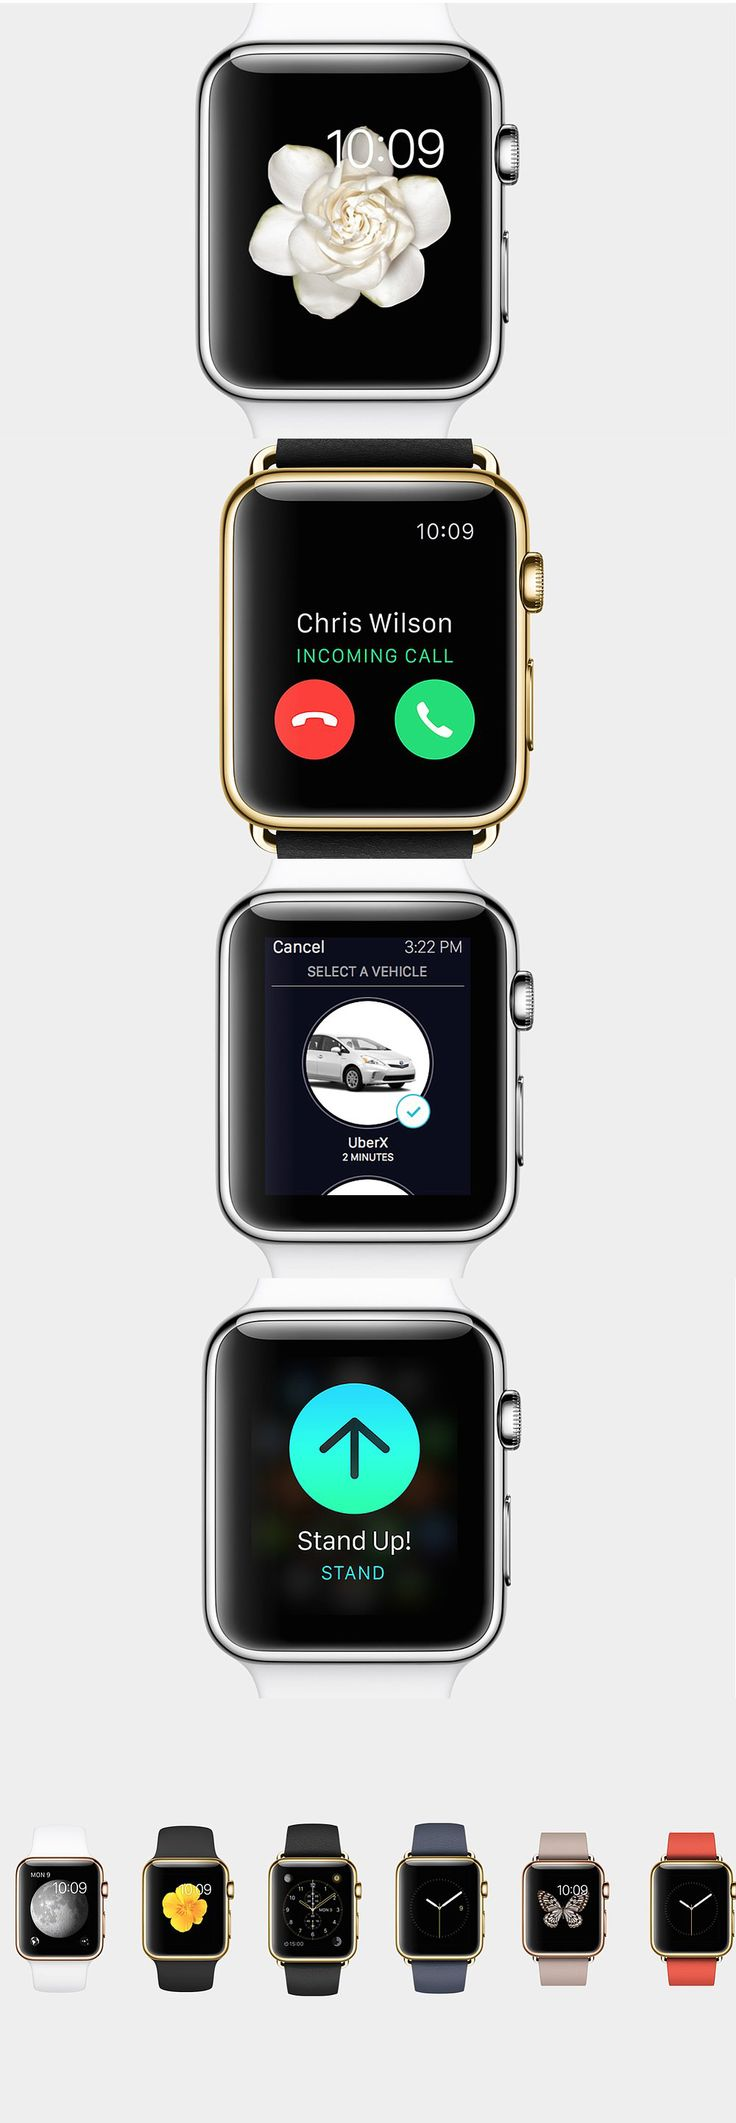 Here are 14 of the amazing things the new Apple Watch can do - Released in the UK 24th April...x